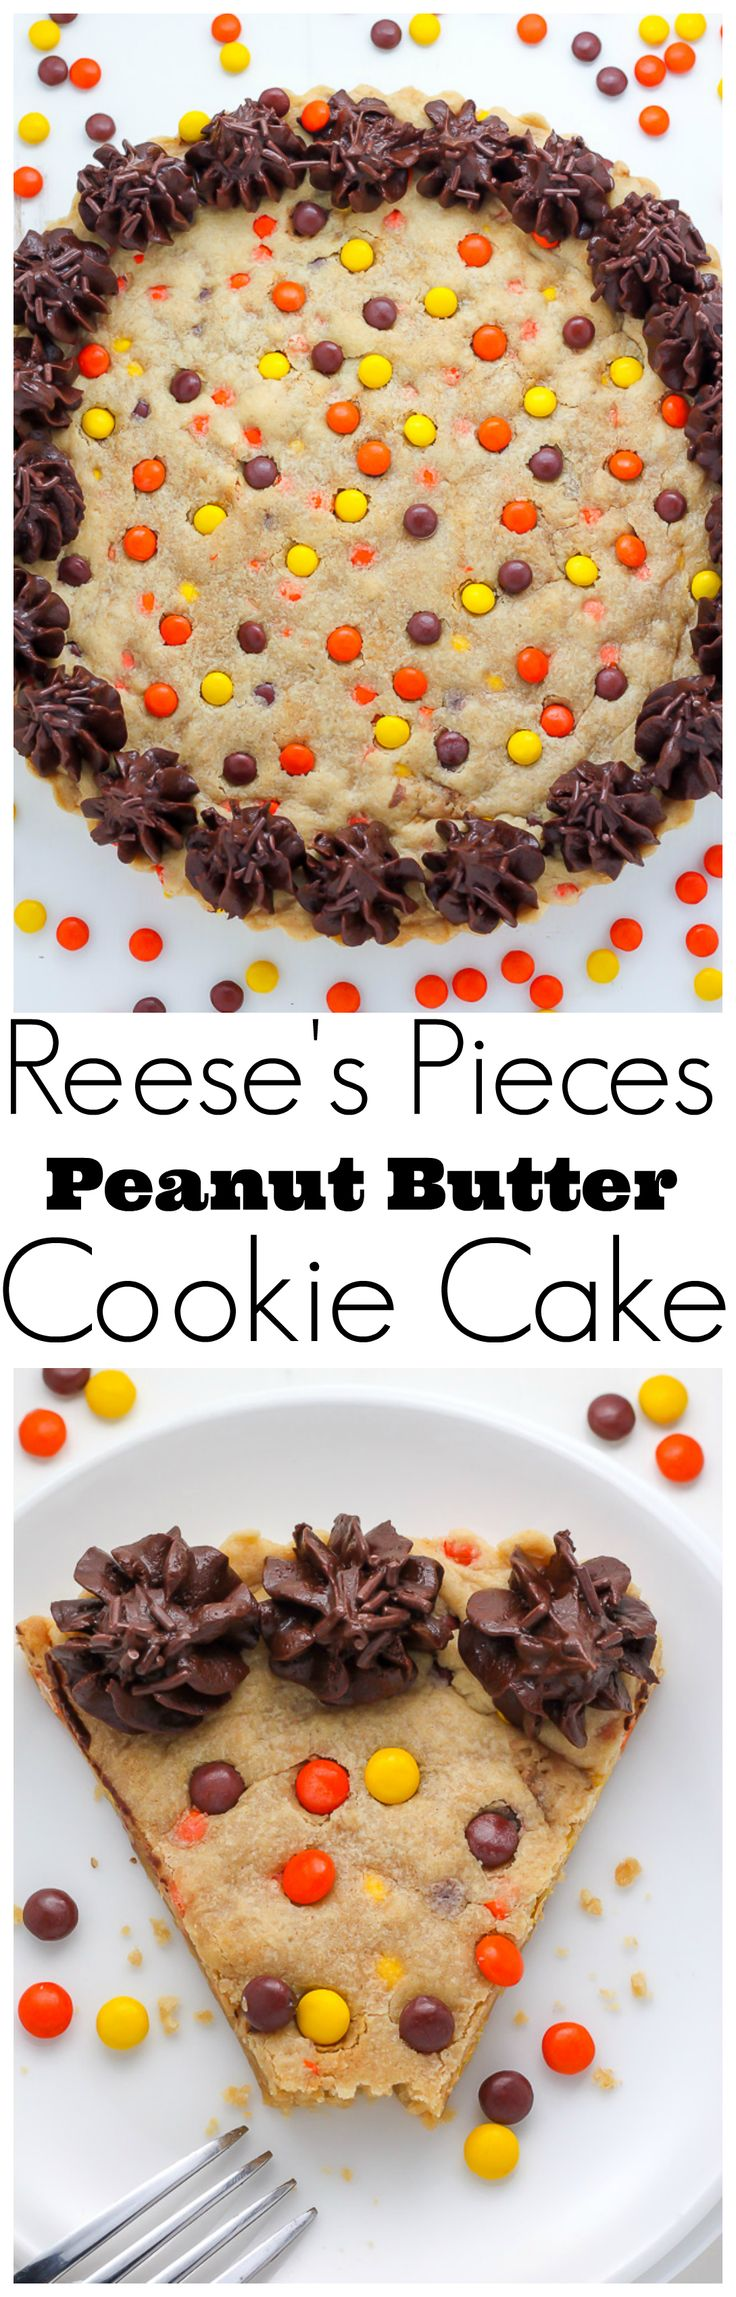 INCREDIBLE Reese's Pieces Peanut Butter Cookie Cake is soft and chewy!